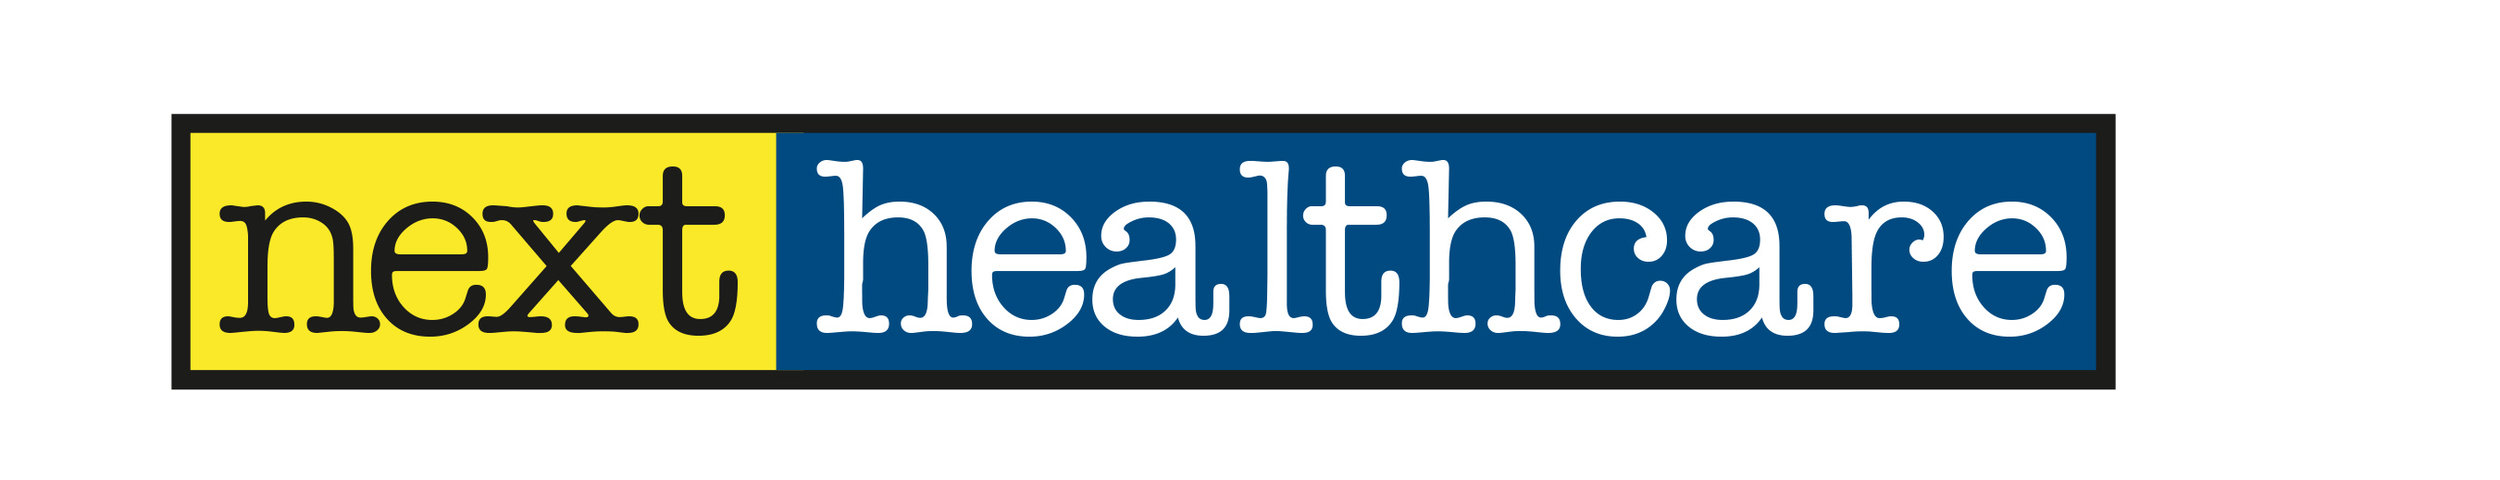 next-healthcare-logo.jpg